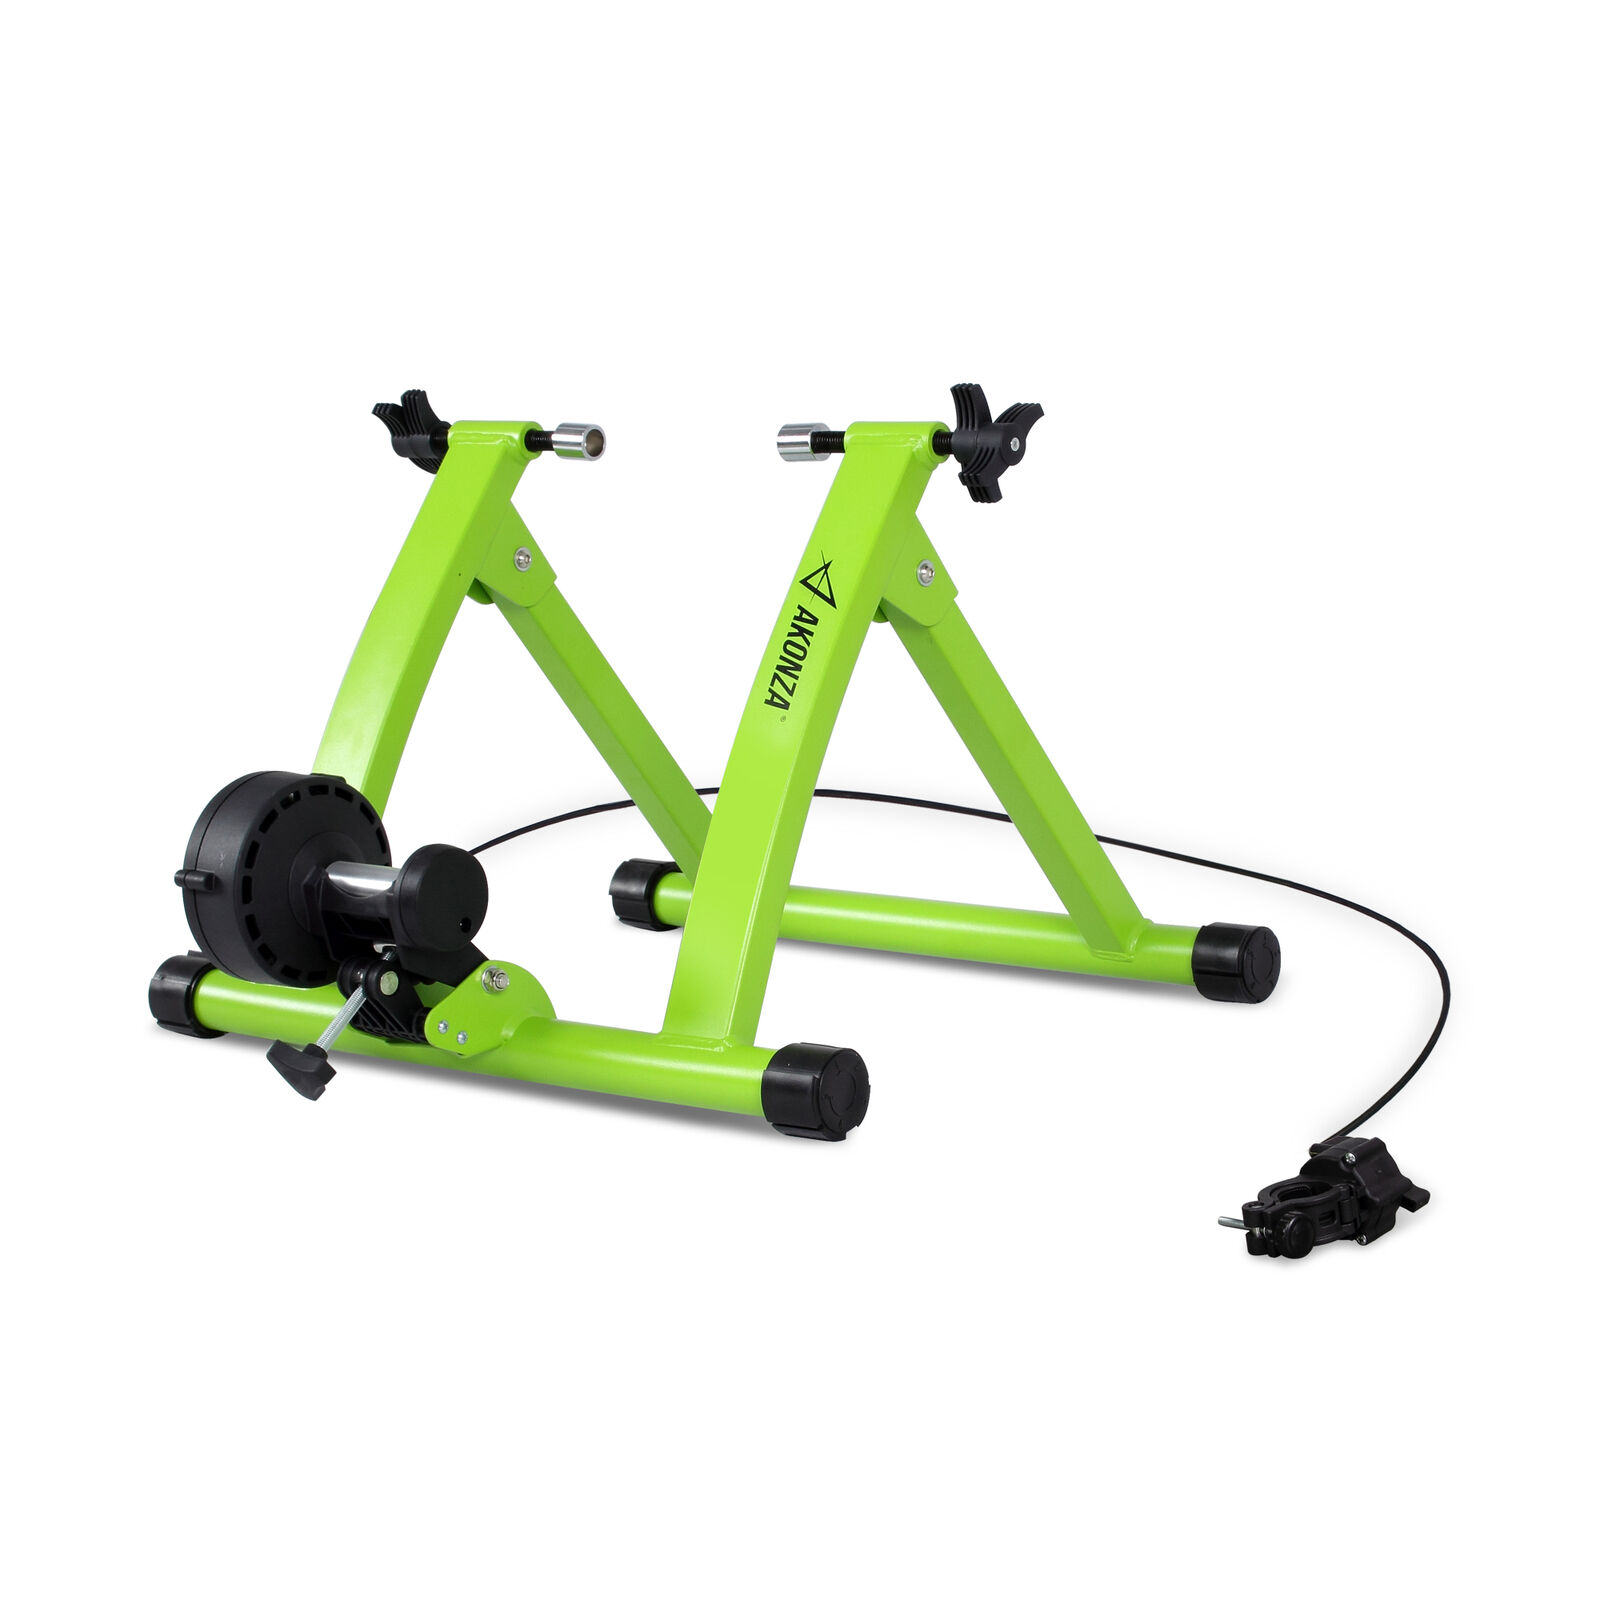 Pro Bicycle  Trainer Stand 6 Levels Resistance Exercise Wheel Magnetic, Green  sale online discount low price